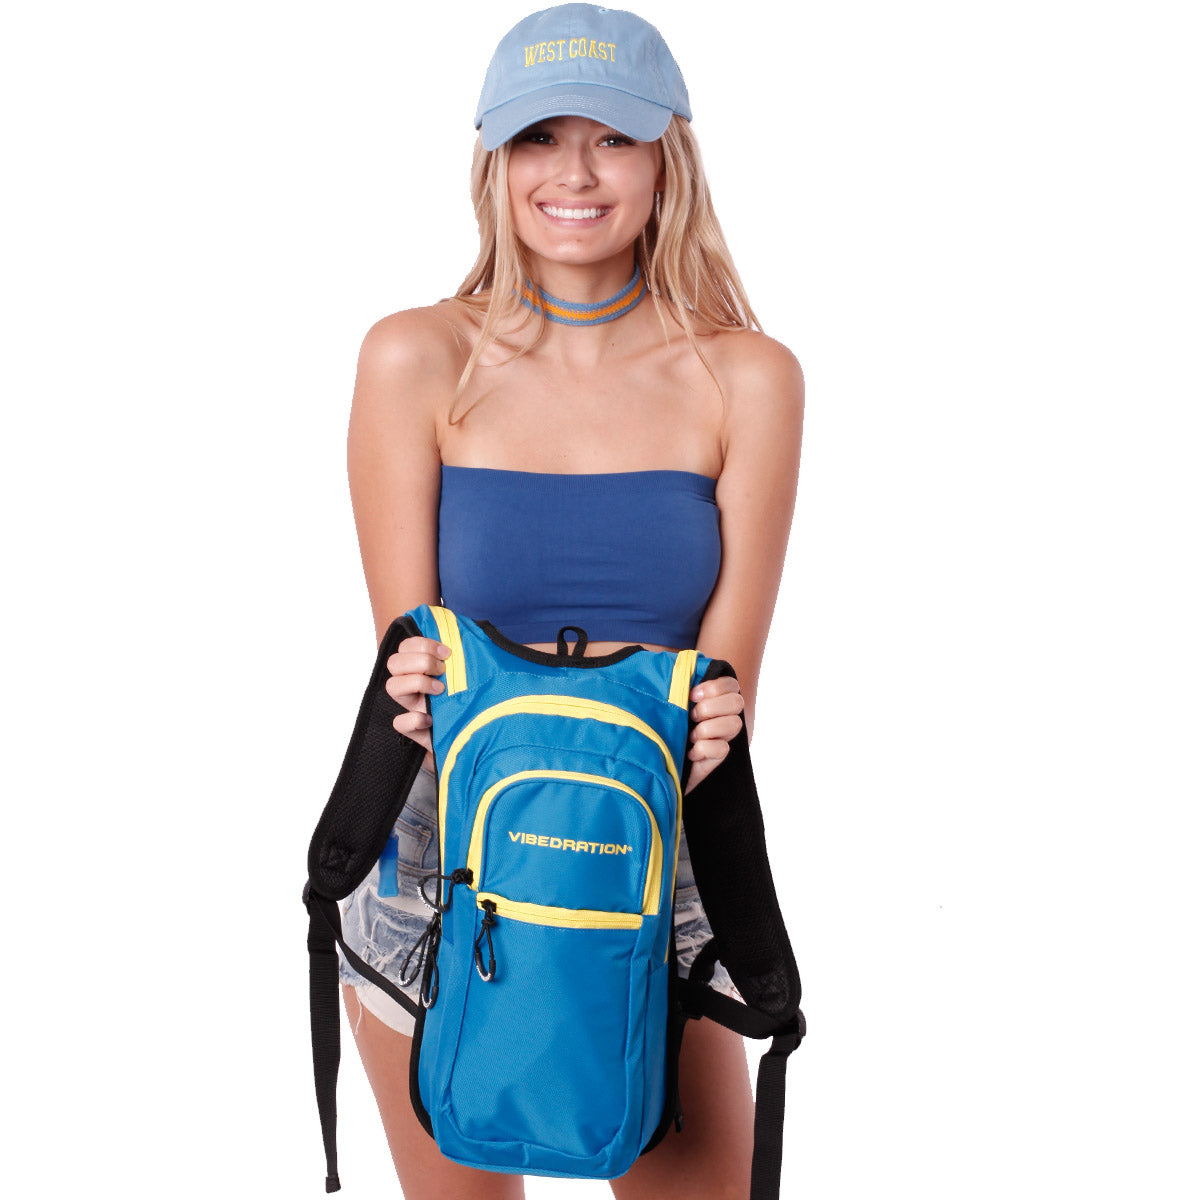 Female holding baby blue and yellow hydration pack with three pockets.